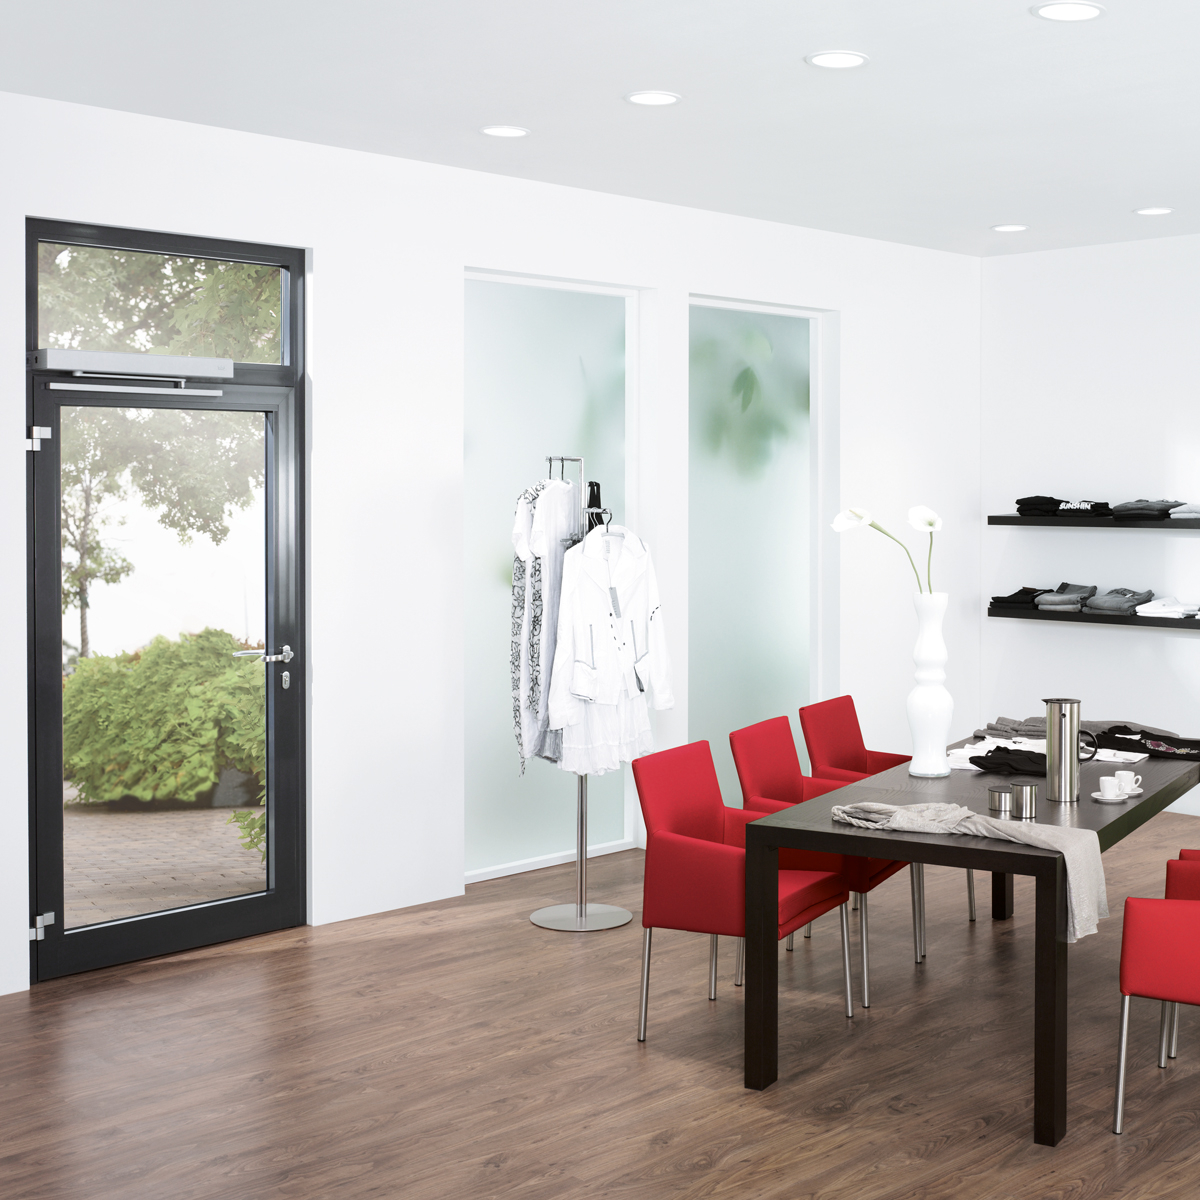 Dicas 100 Door Room Door: Automatic Framed Swing Door System